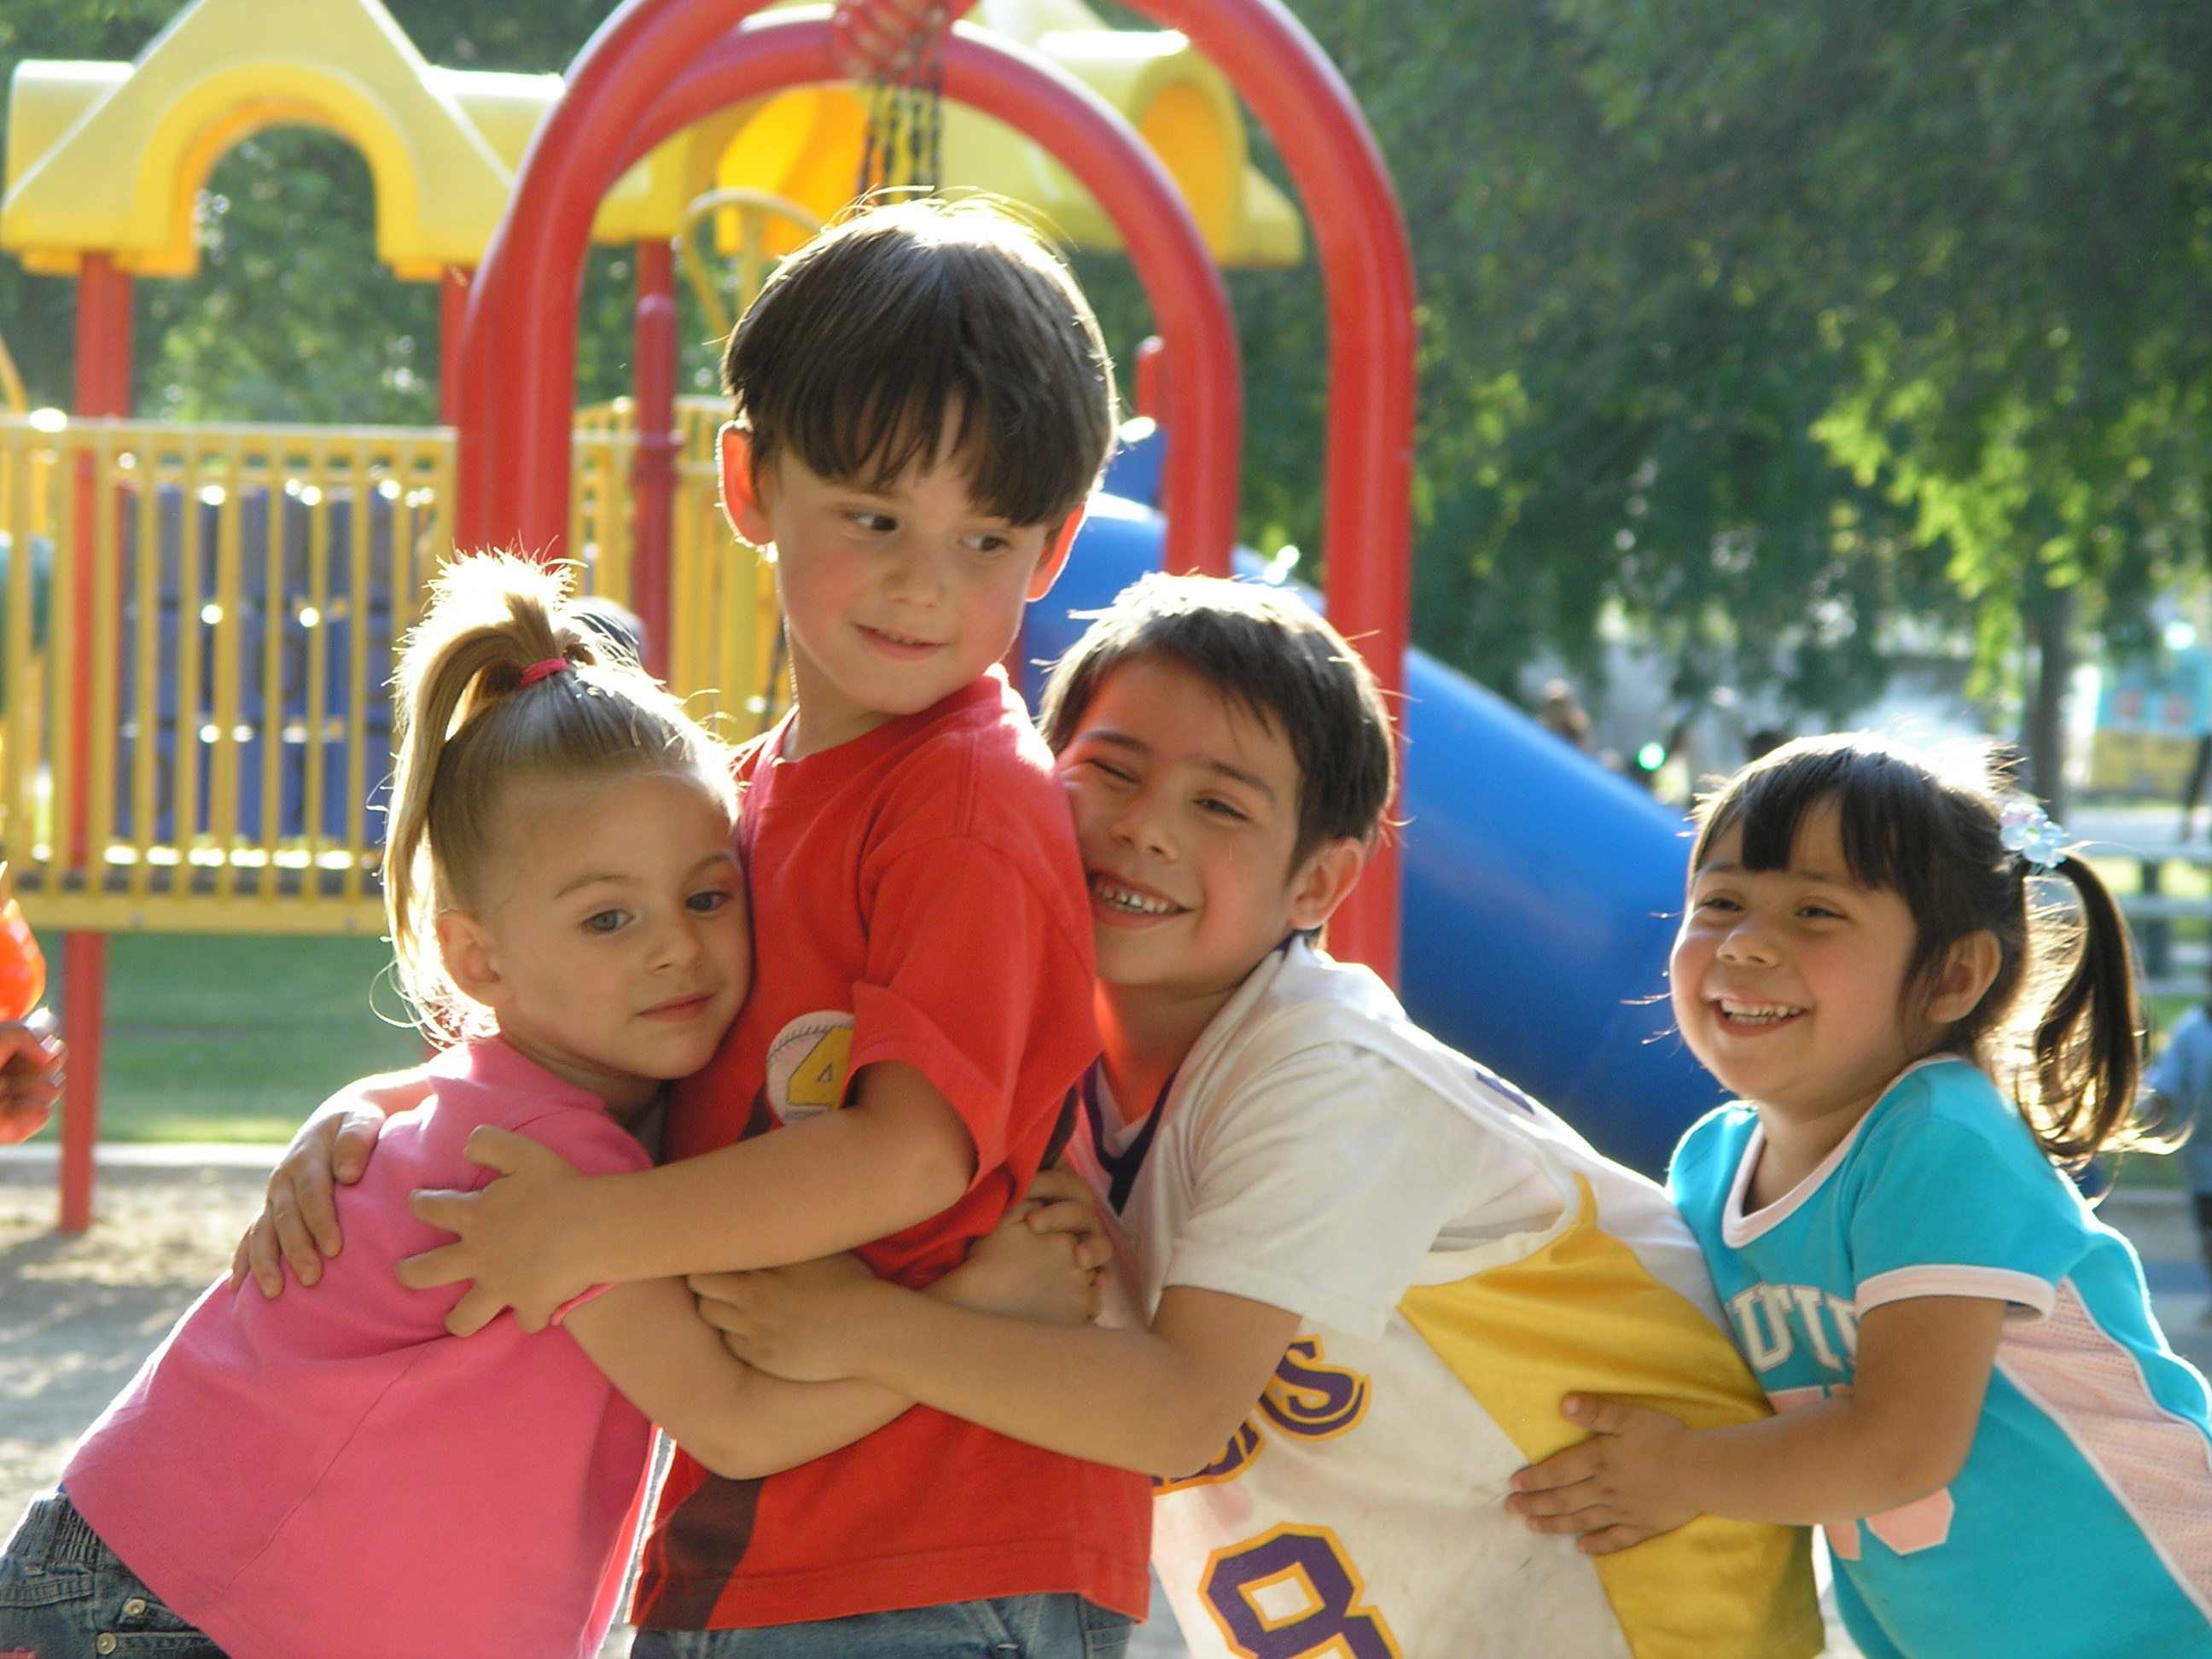 valuing kids who foster